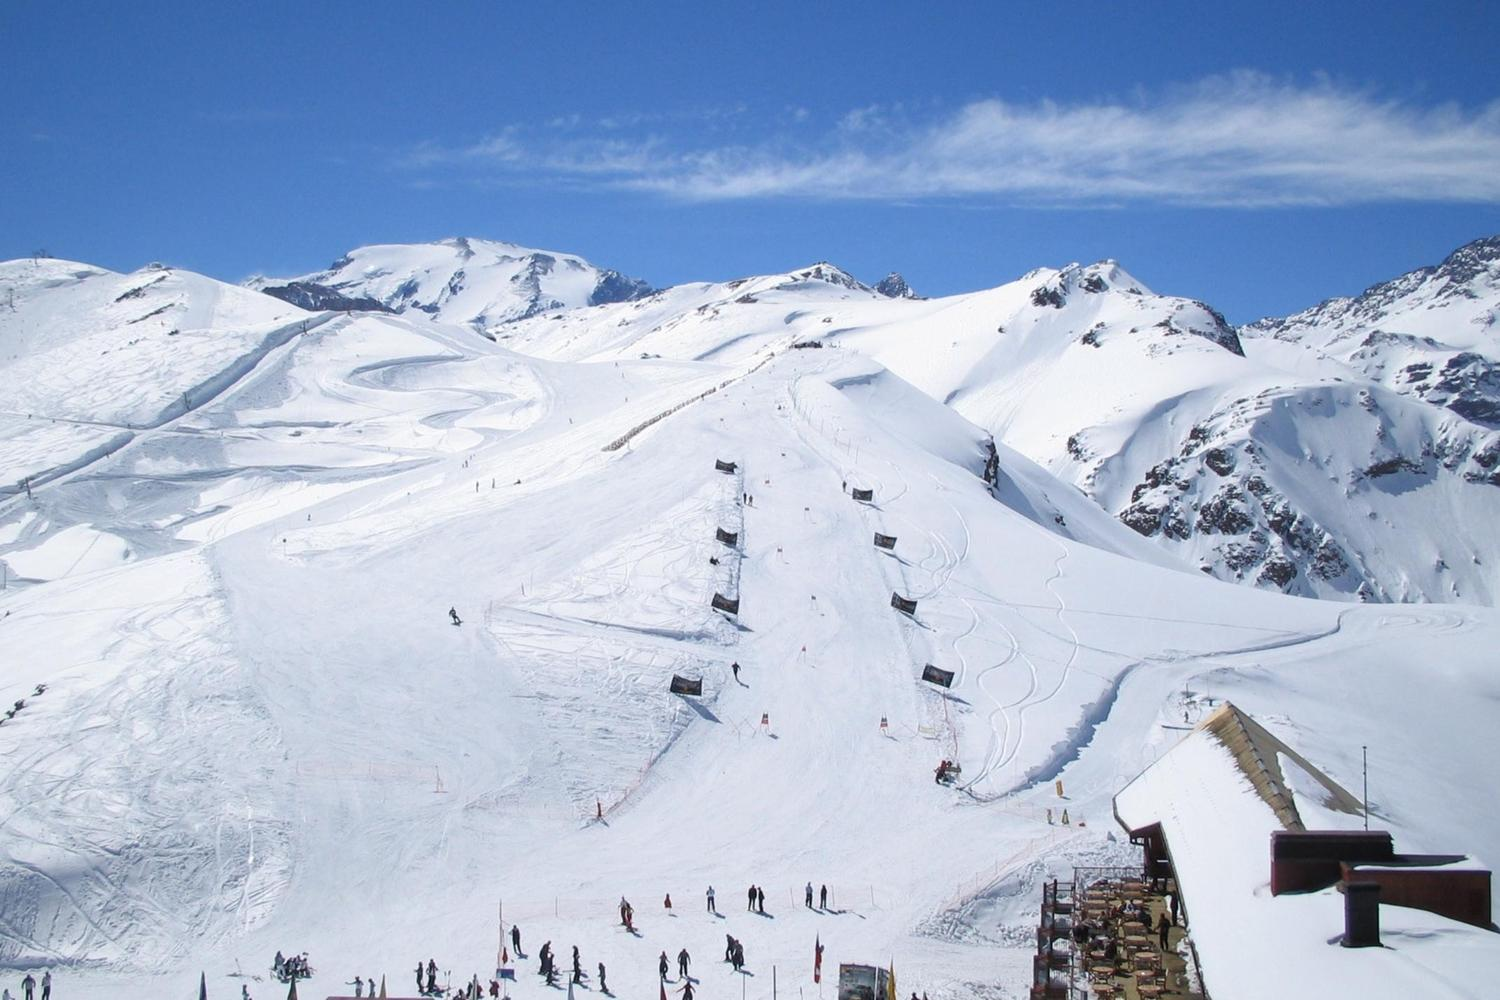 Valle Nevado's slopes spread out over the central Andean mountains of Chile